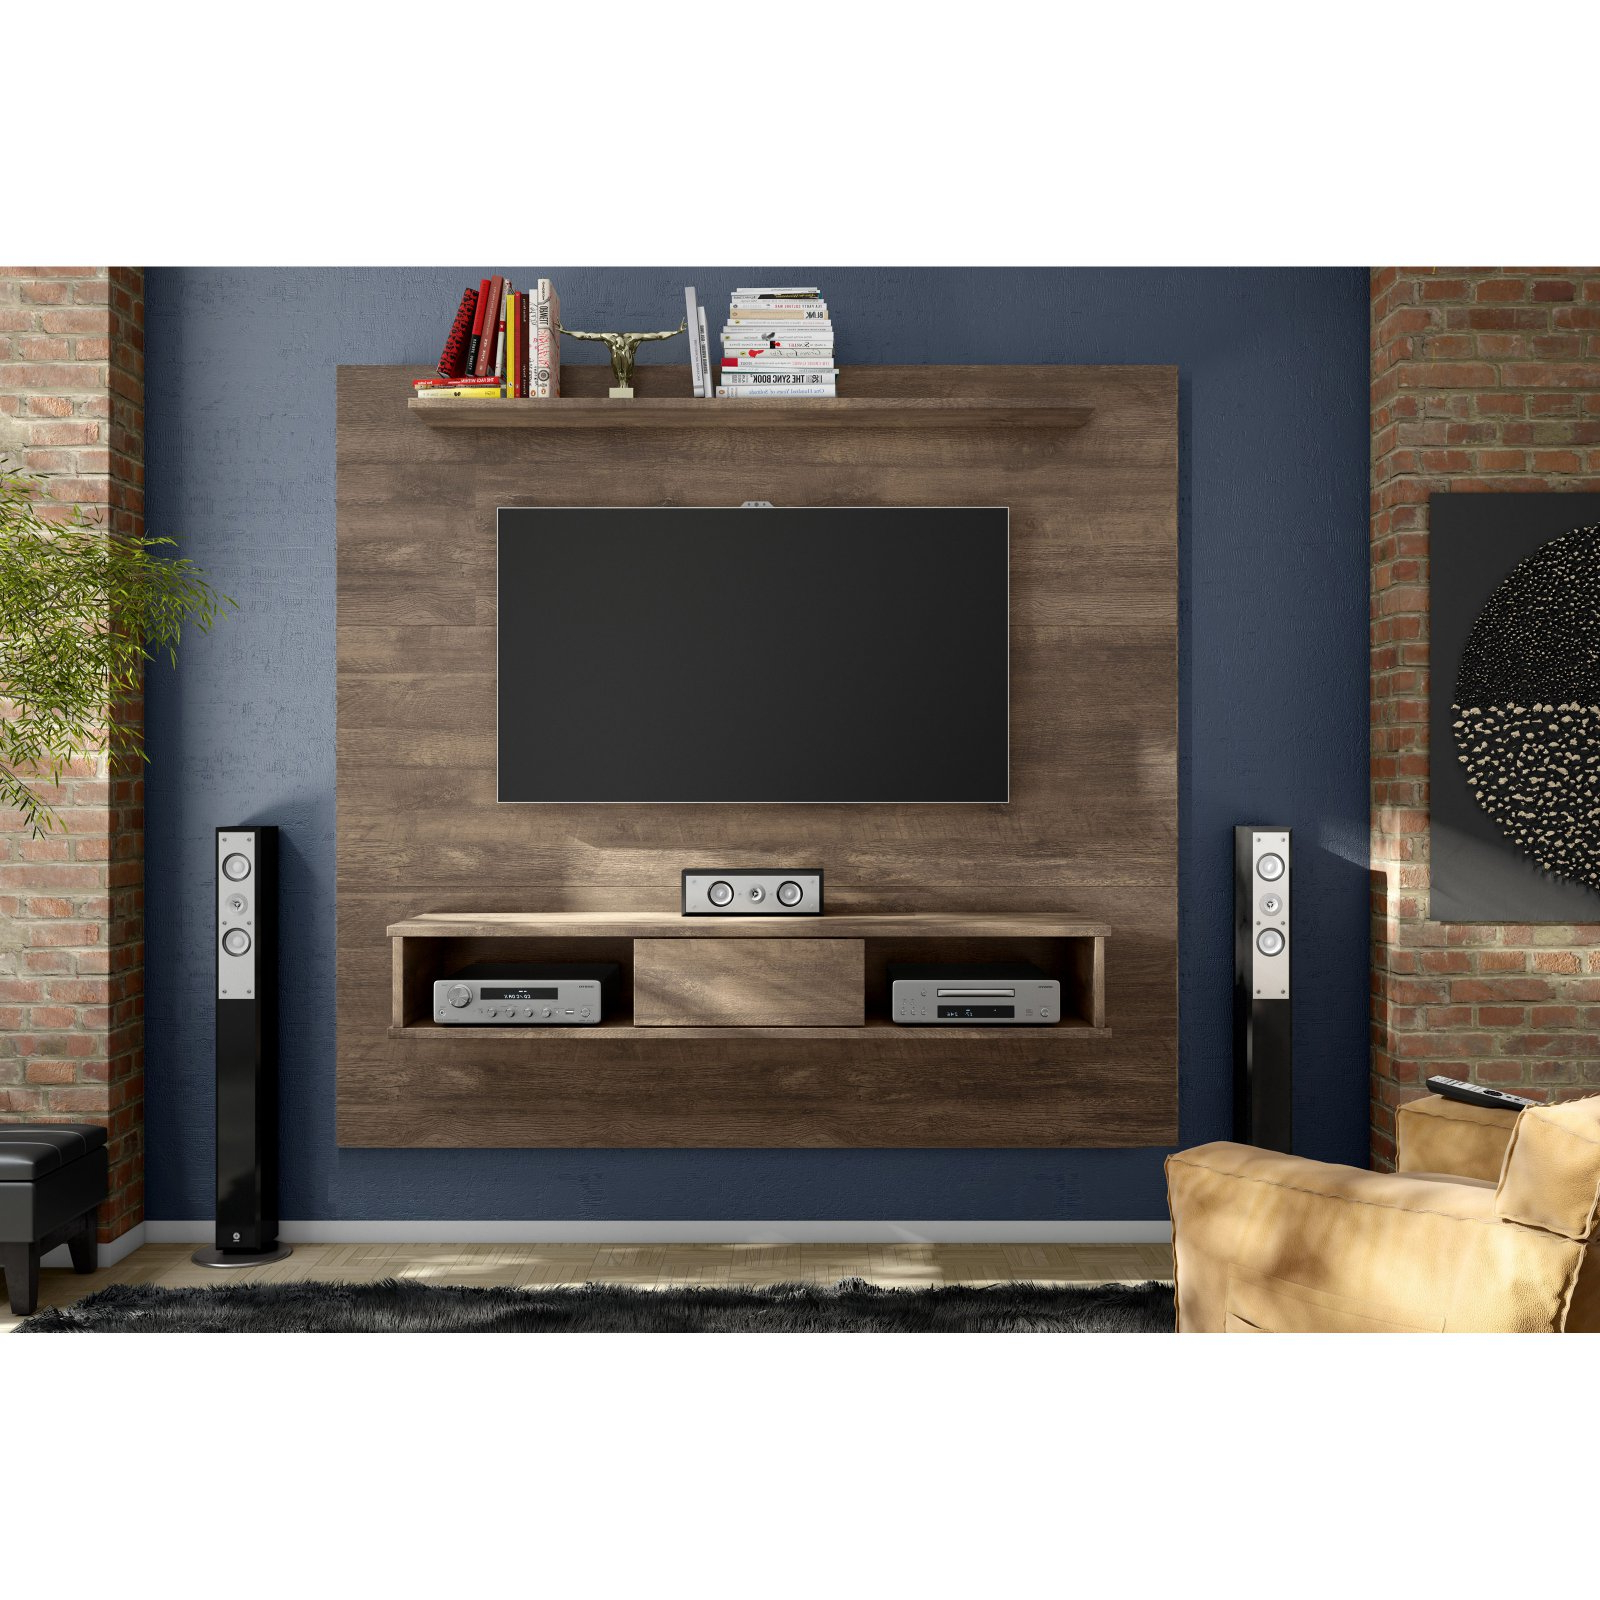 Floating Entertainment Center Rustic Wall Unit Mount Media 70 Inch In Most Popular Tv Stand Wall Units (Gallery 16 of 20)